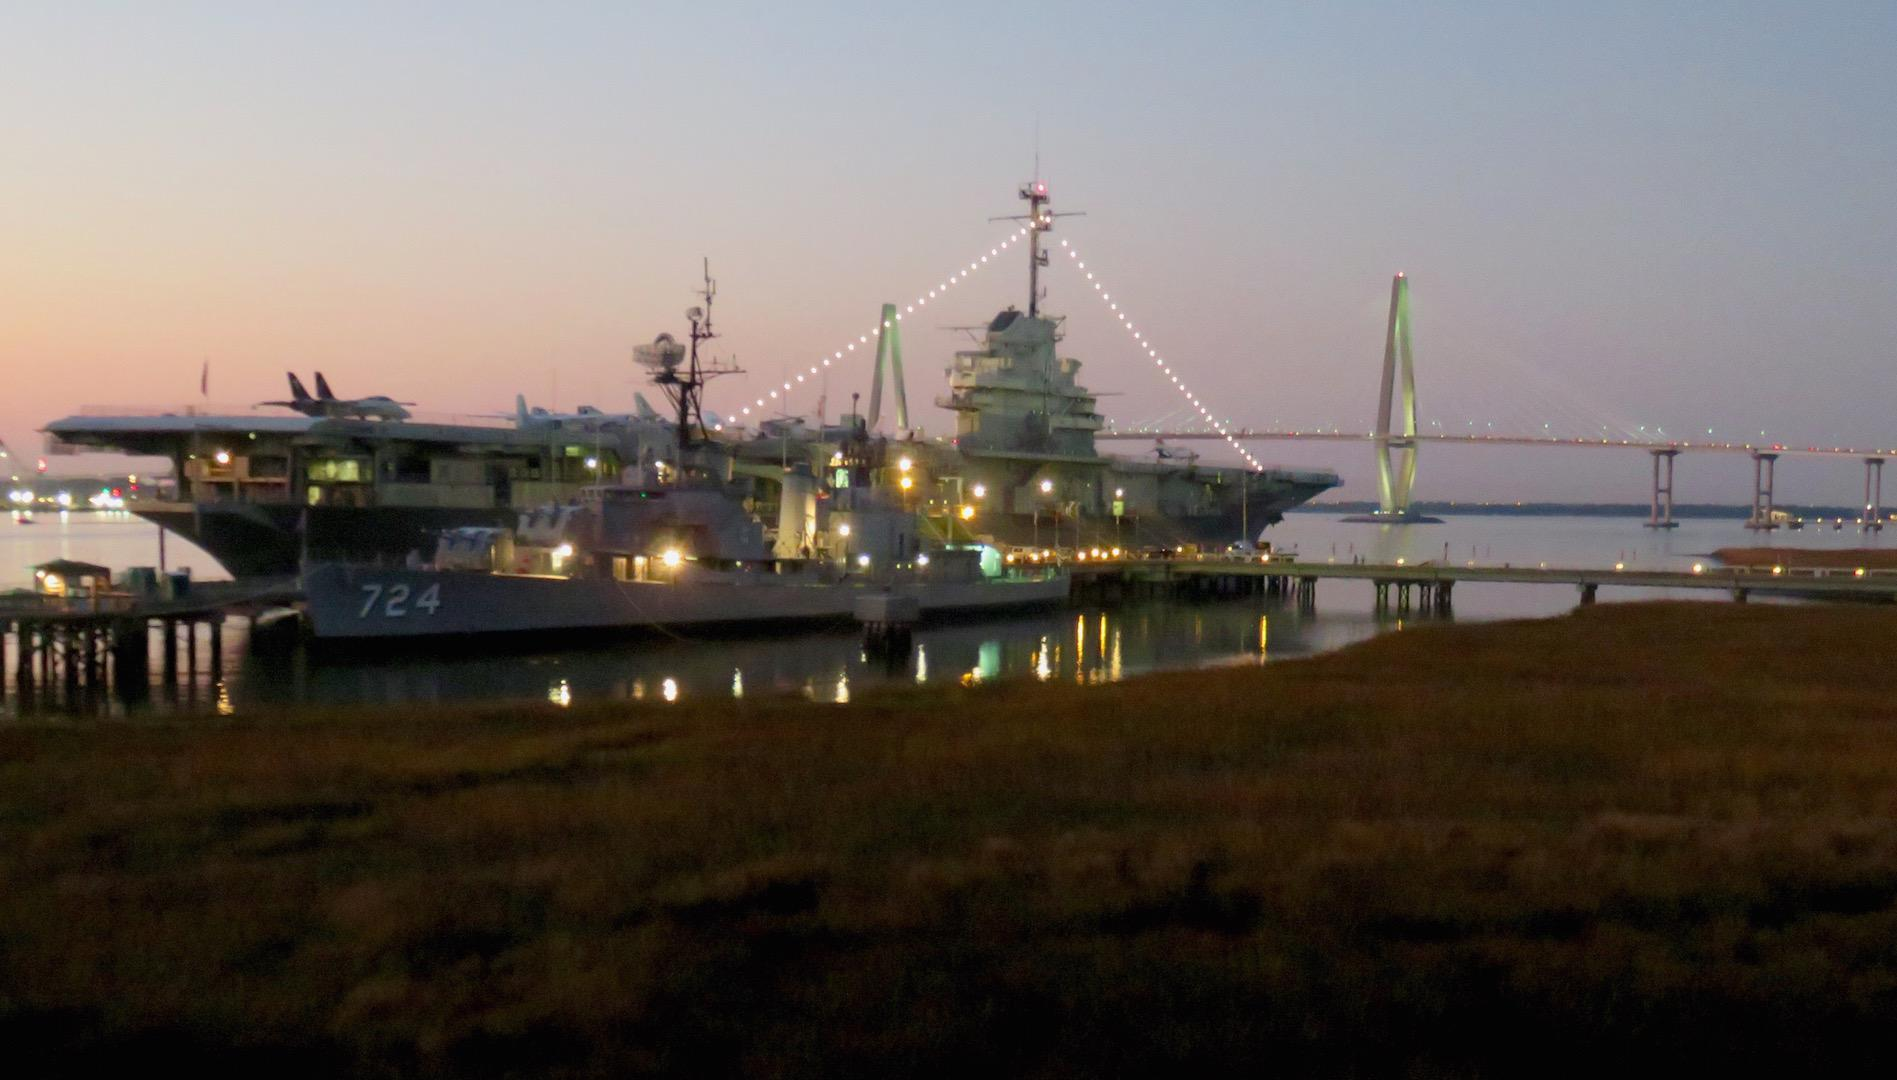 The Yorktown at night